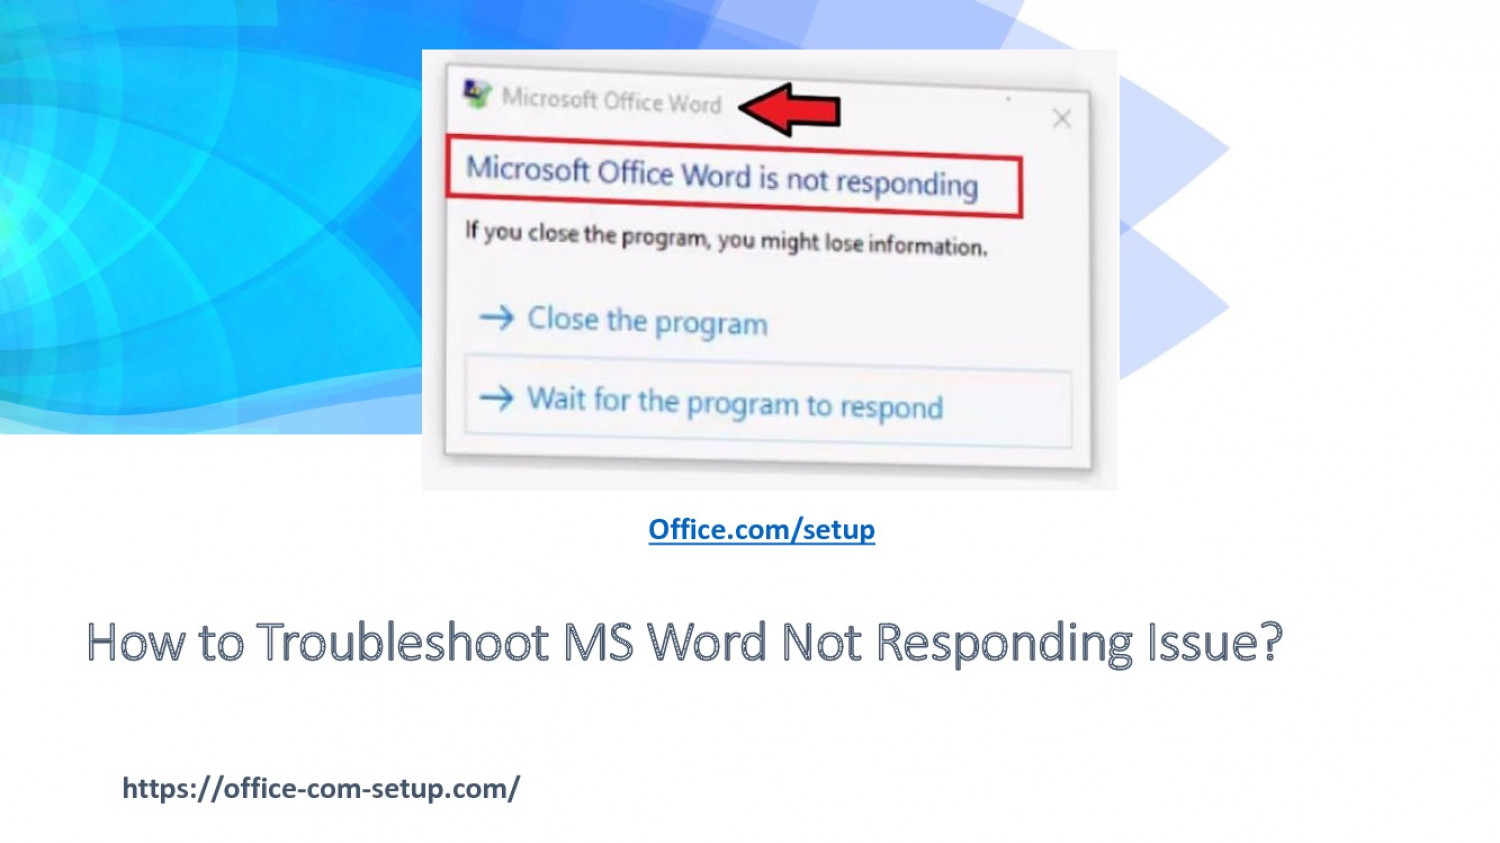 How to Troubleshoot MS Word Not Responding Issue? Infographic